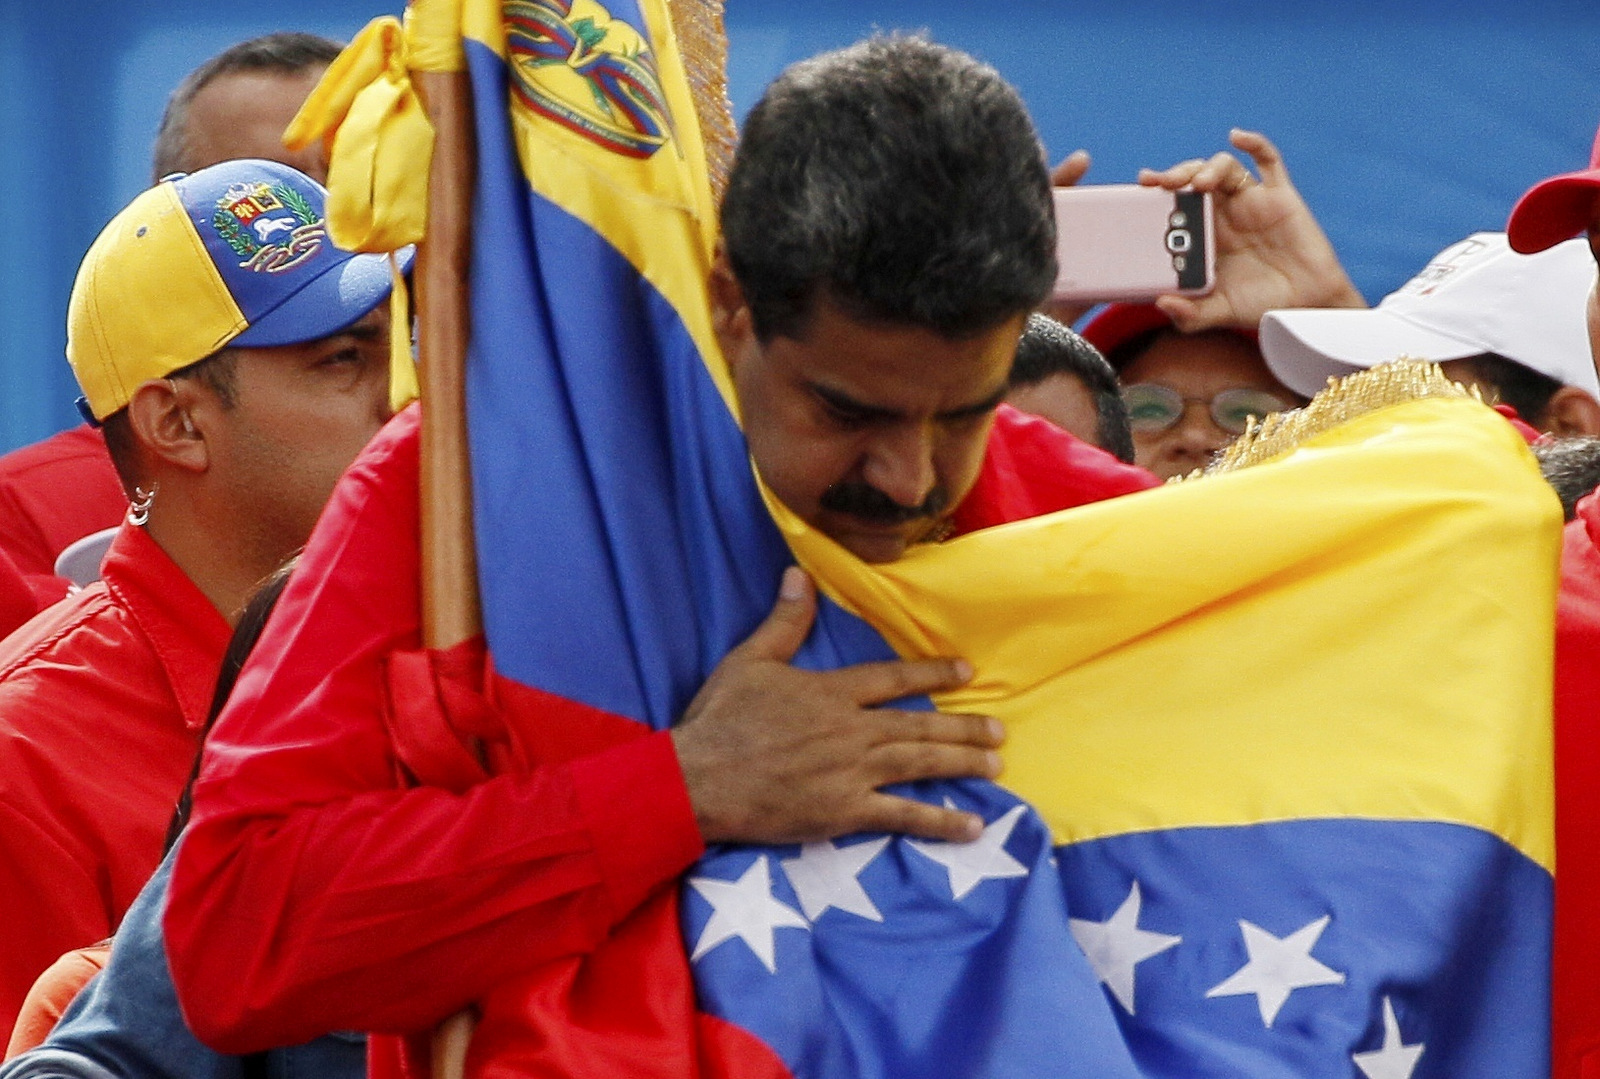 Venezuela's President Nicolas Maduro holds the country's national flag during a rally in Caracas, Venezuela, July 27, 2017. (AP/Ariana Cubillos)